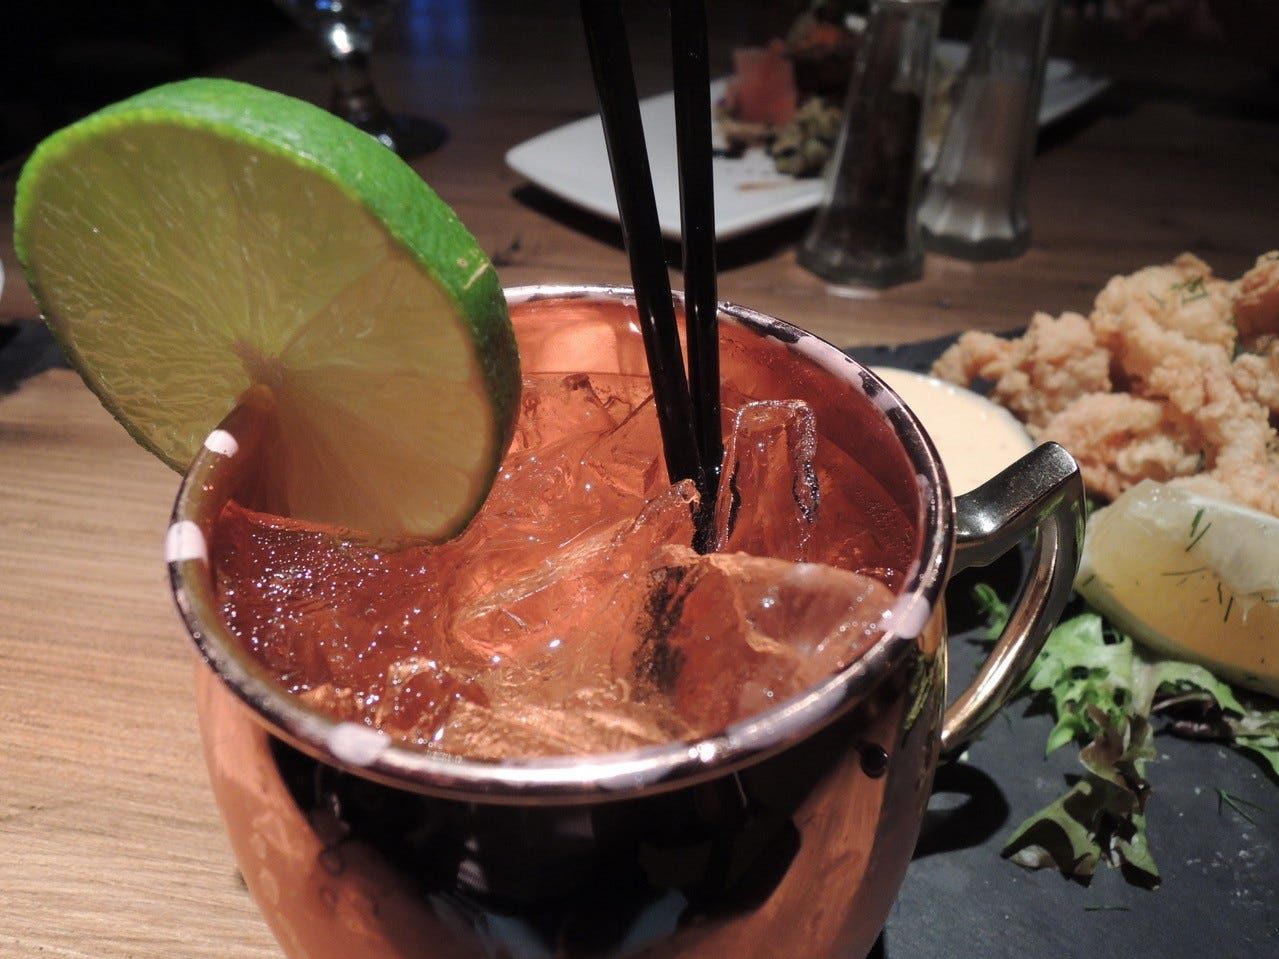 A refreshing virgin Moscow Mule from the bar at the Woodside Grill.